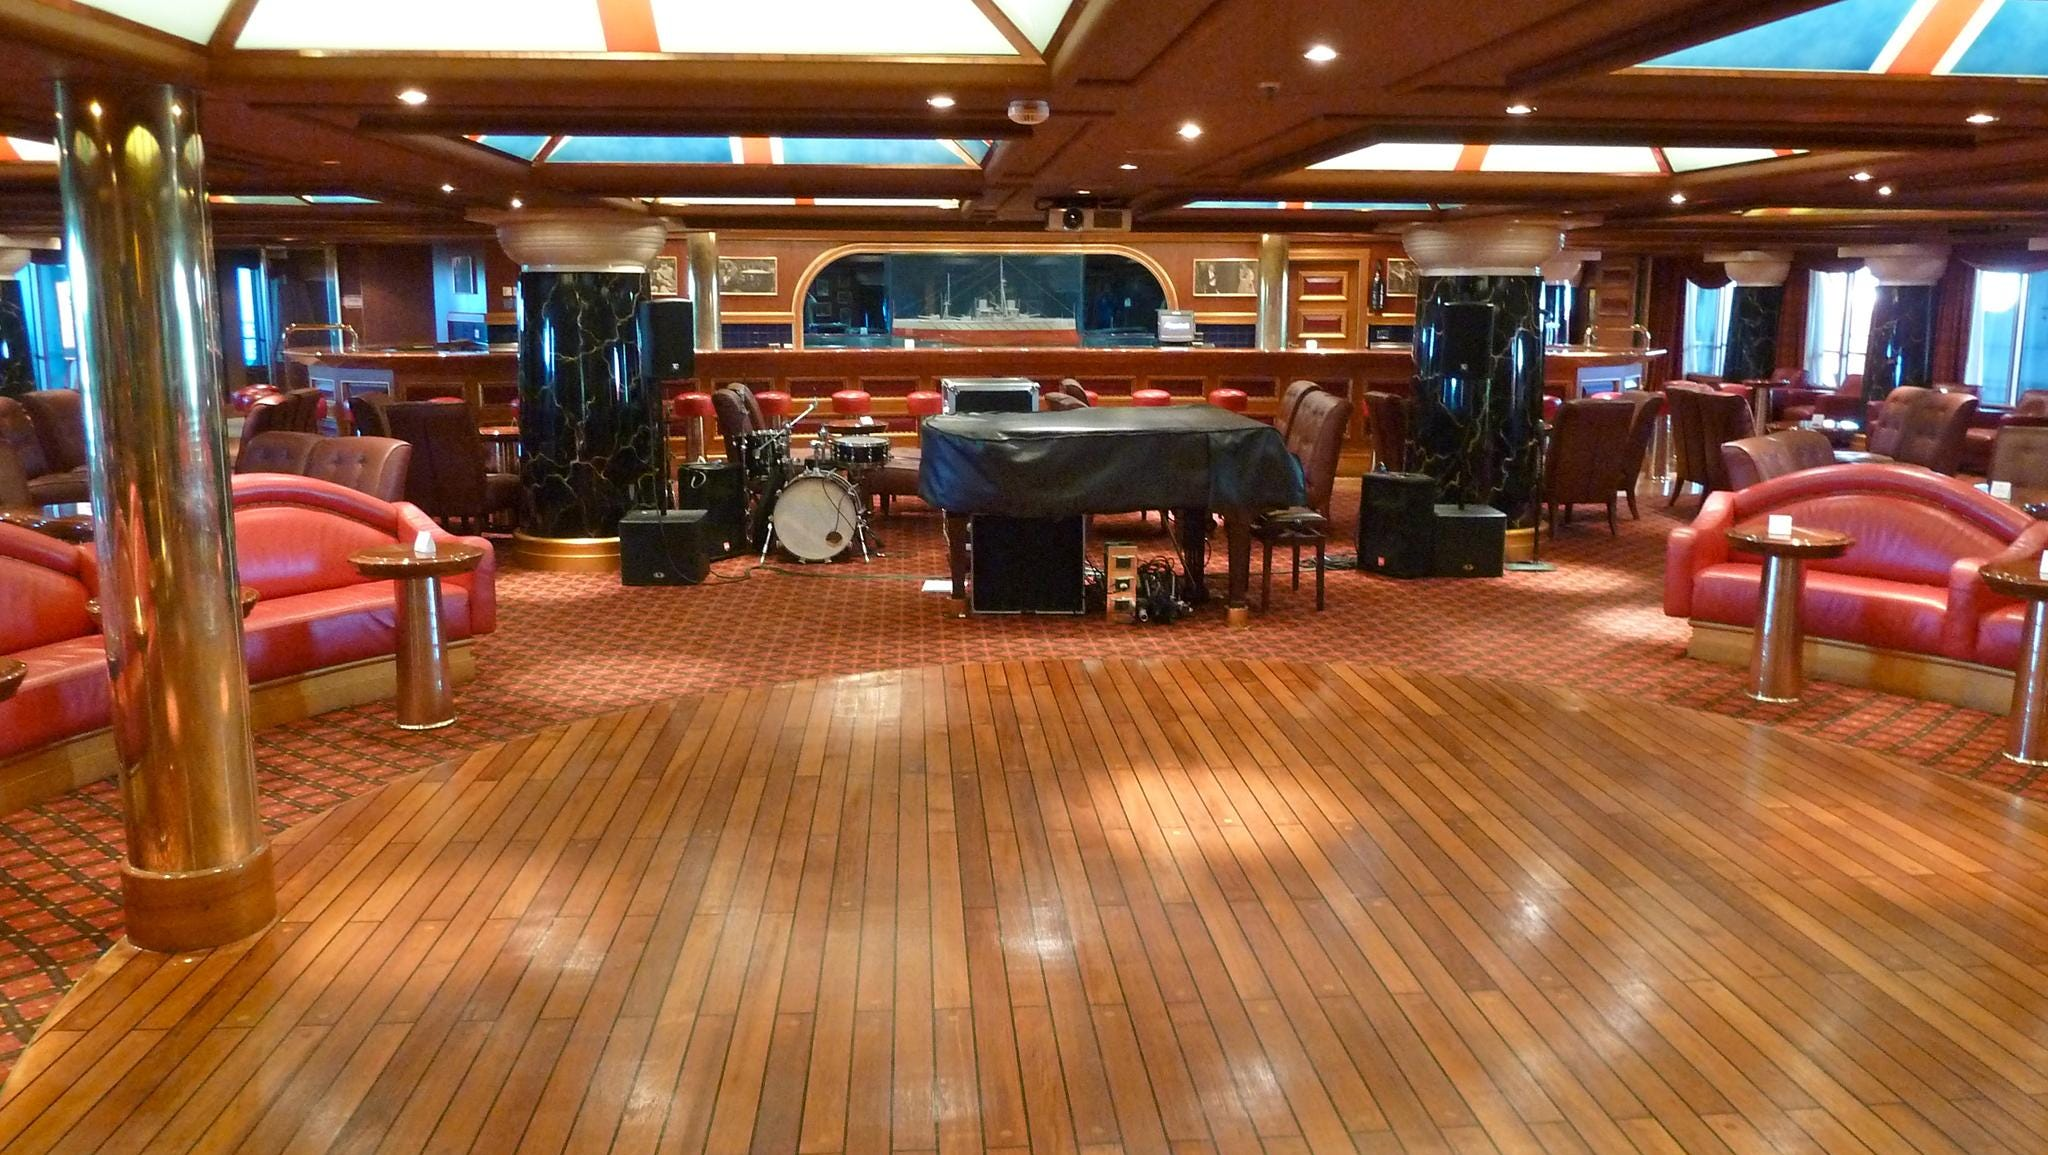 Winston's Cigar Bar is on Deck 4, just forward of the Glory Atrium. Seating 147 guests, it has paintings of World War One battle ships and a half-model battleship in a decorative nod to the former Prime Minister's fascination with the sea.